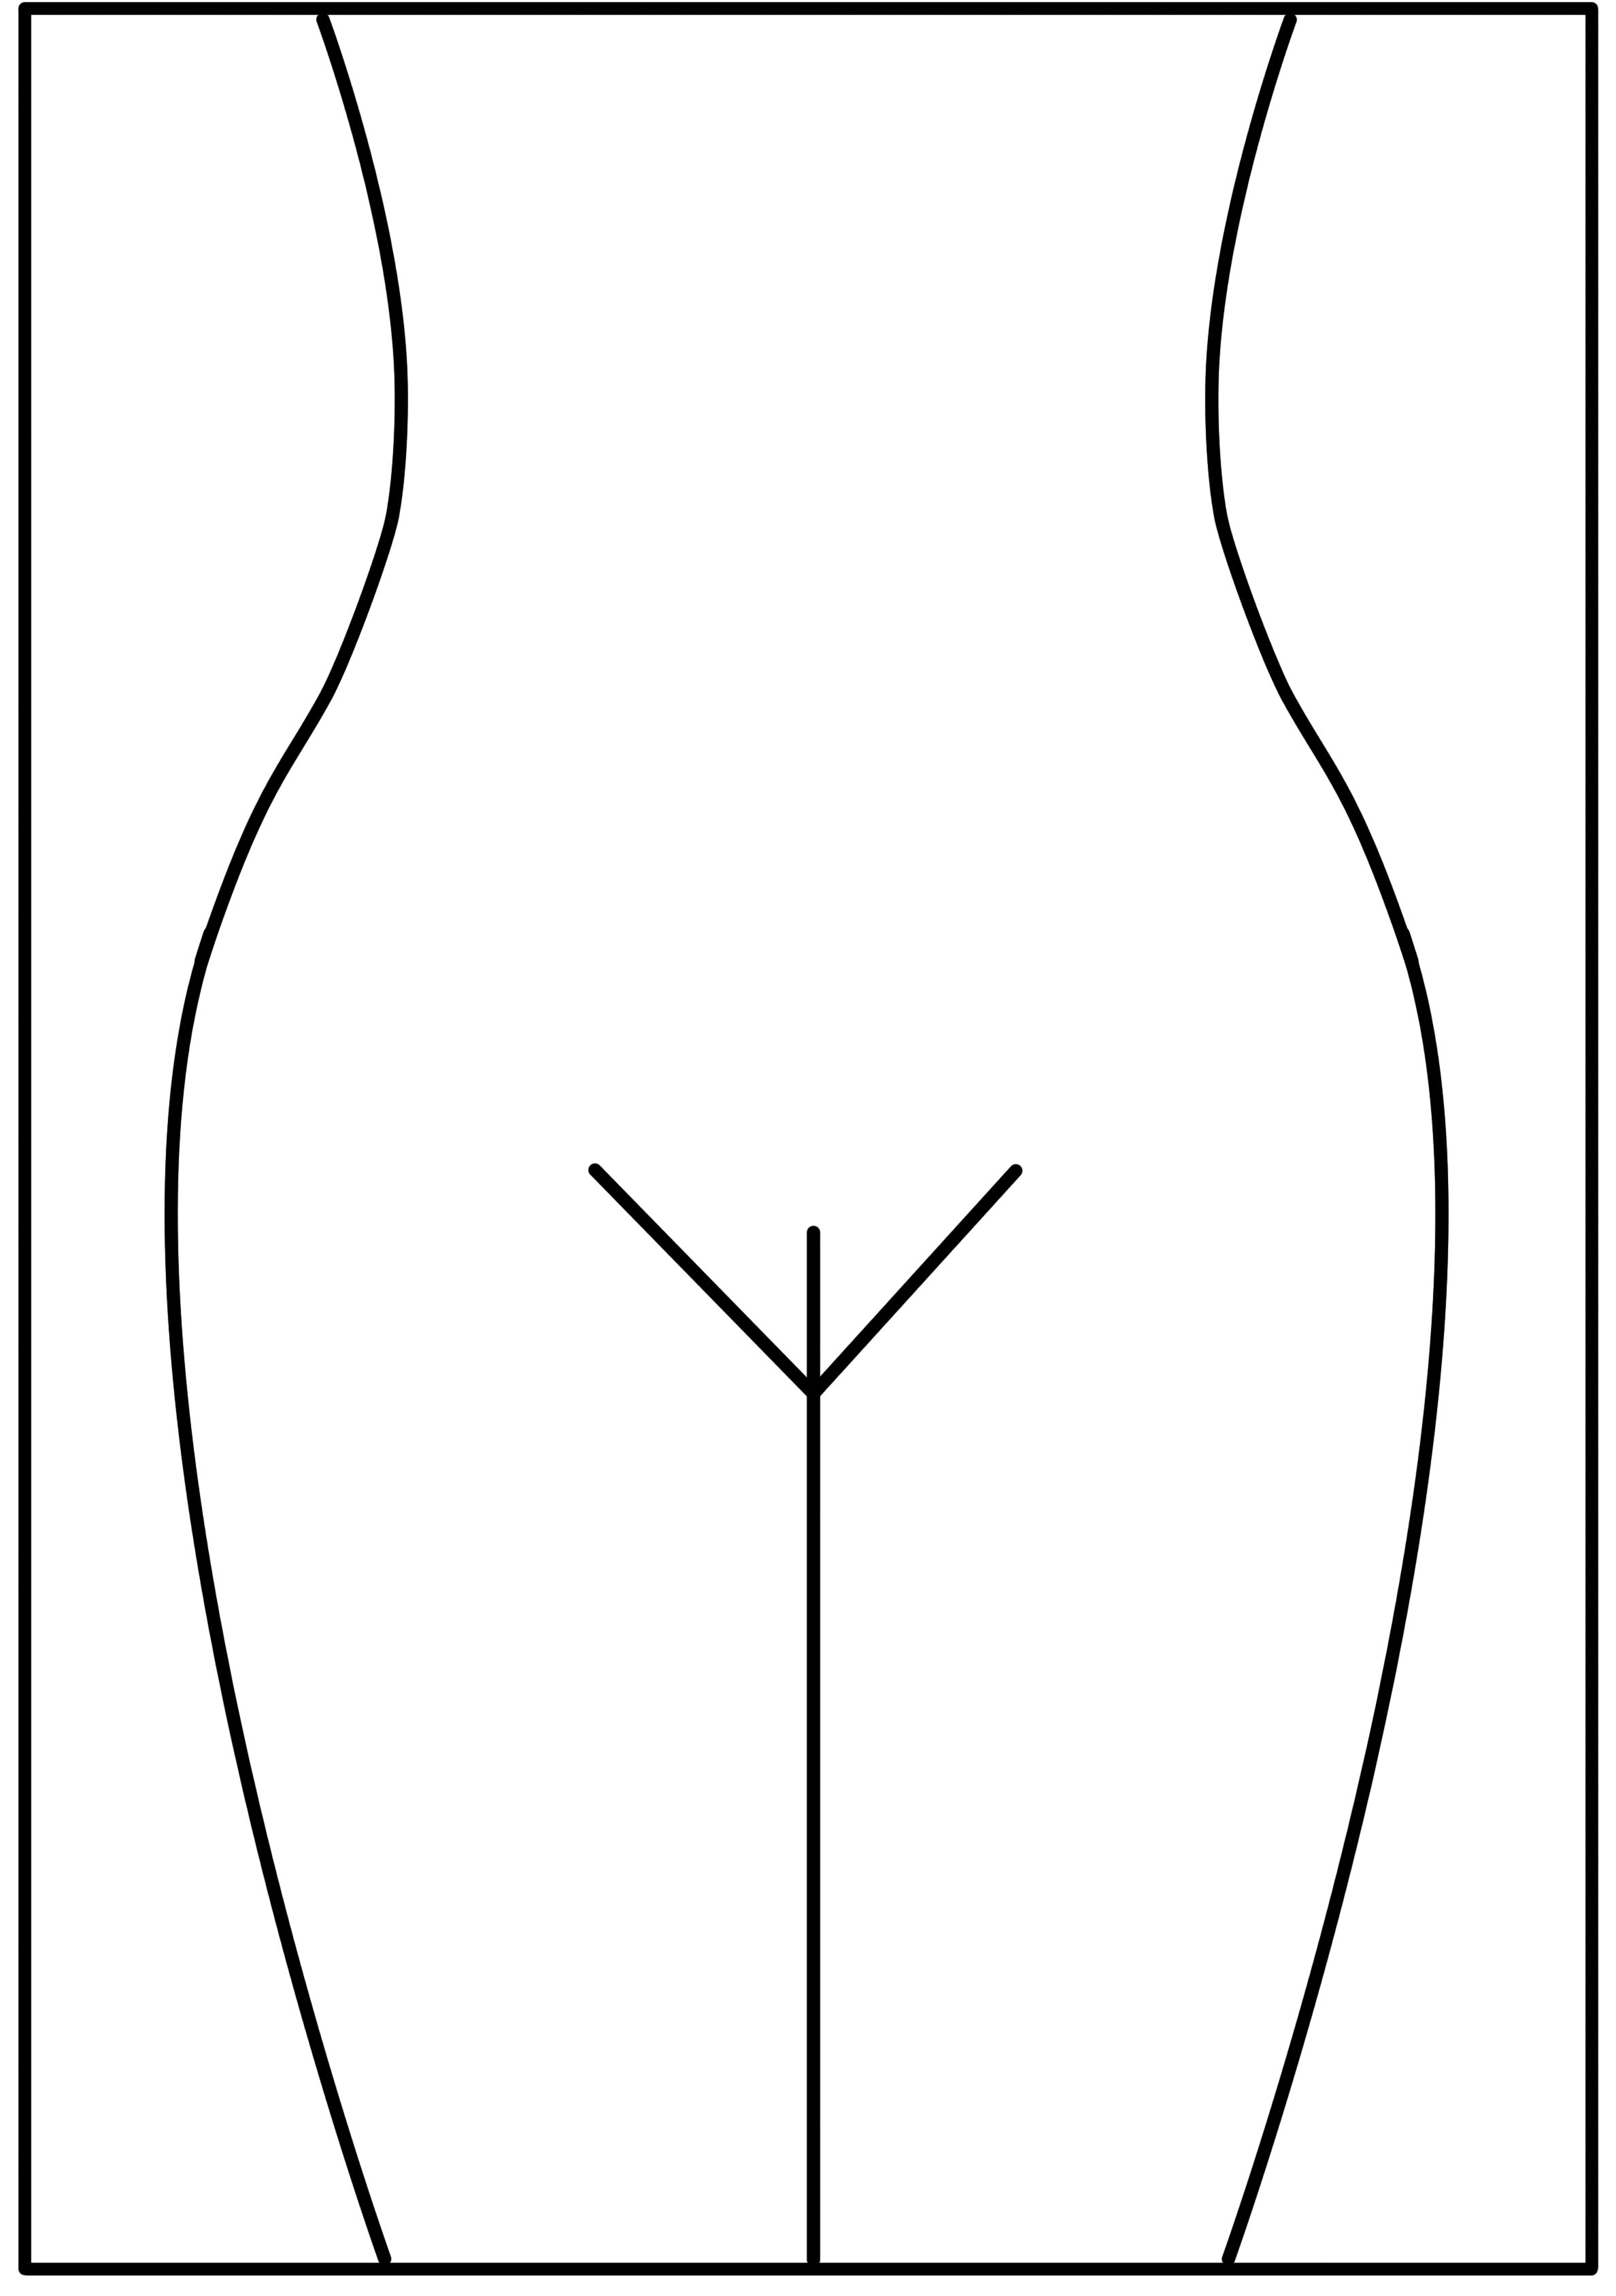 File:Pubic hair style Full Wax.jpg - Wikimedia Commons | See how you ...